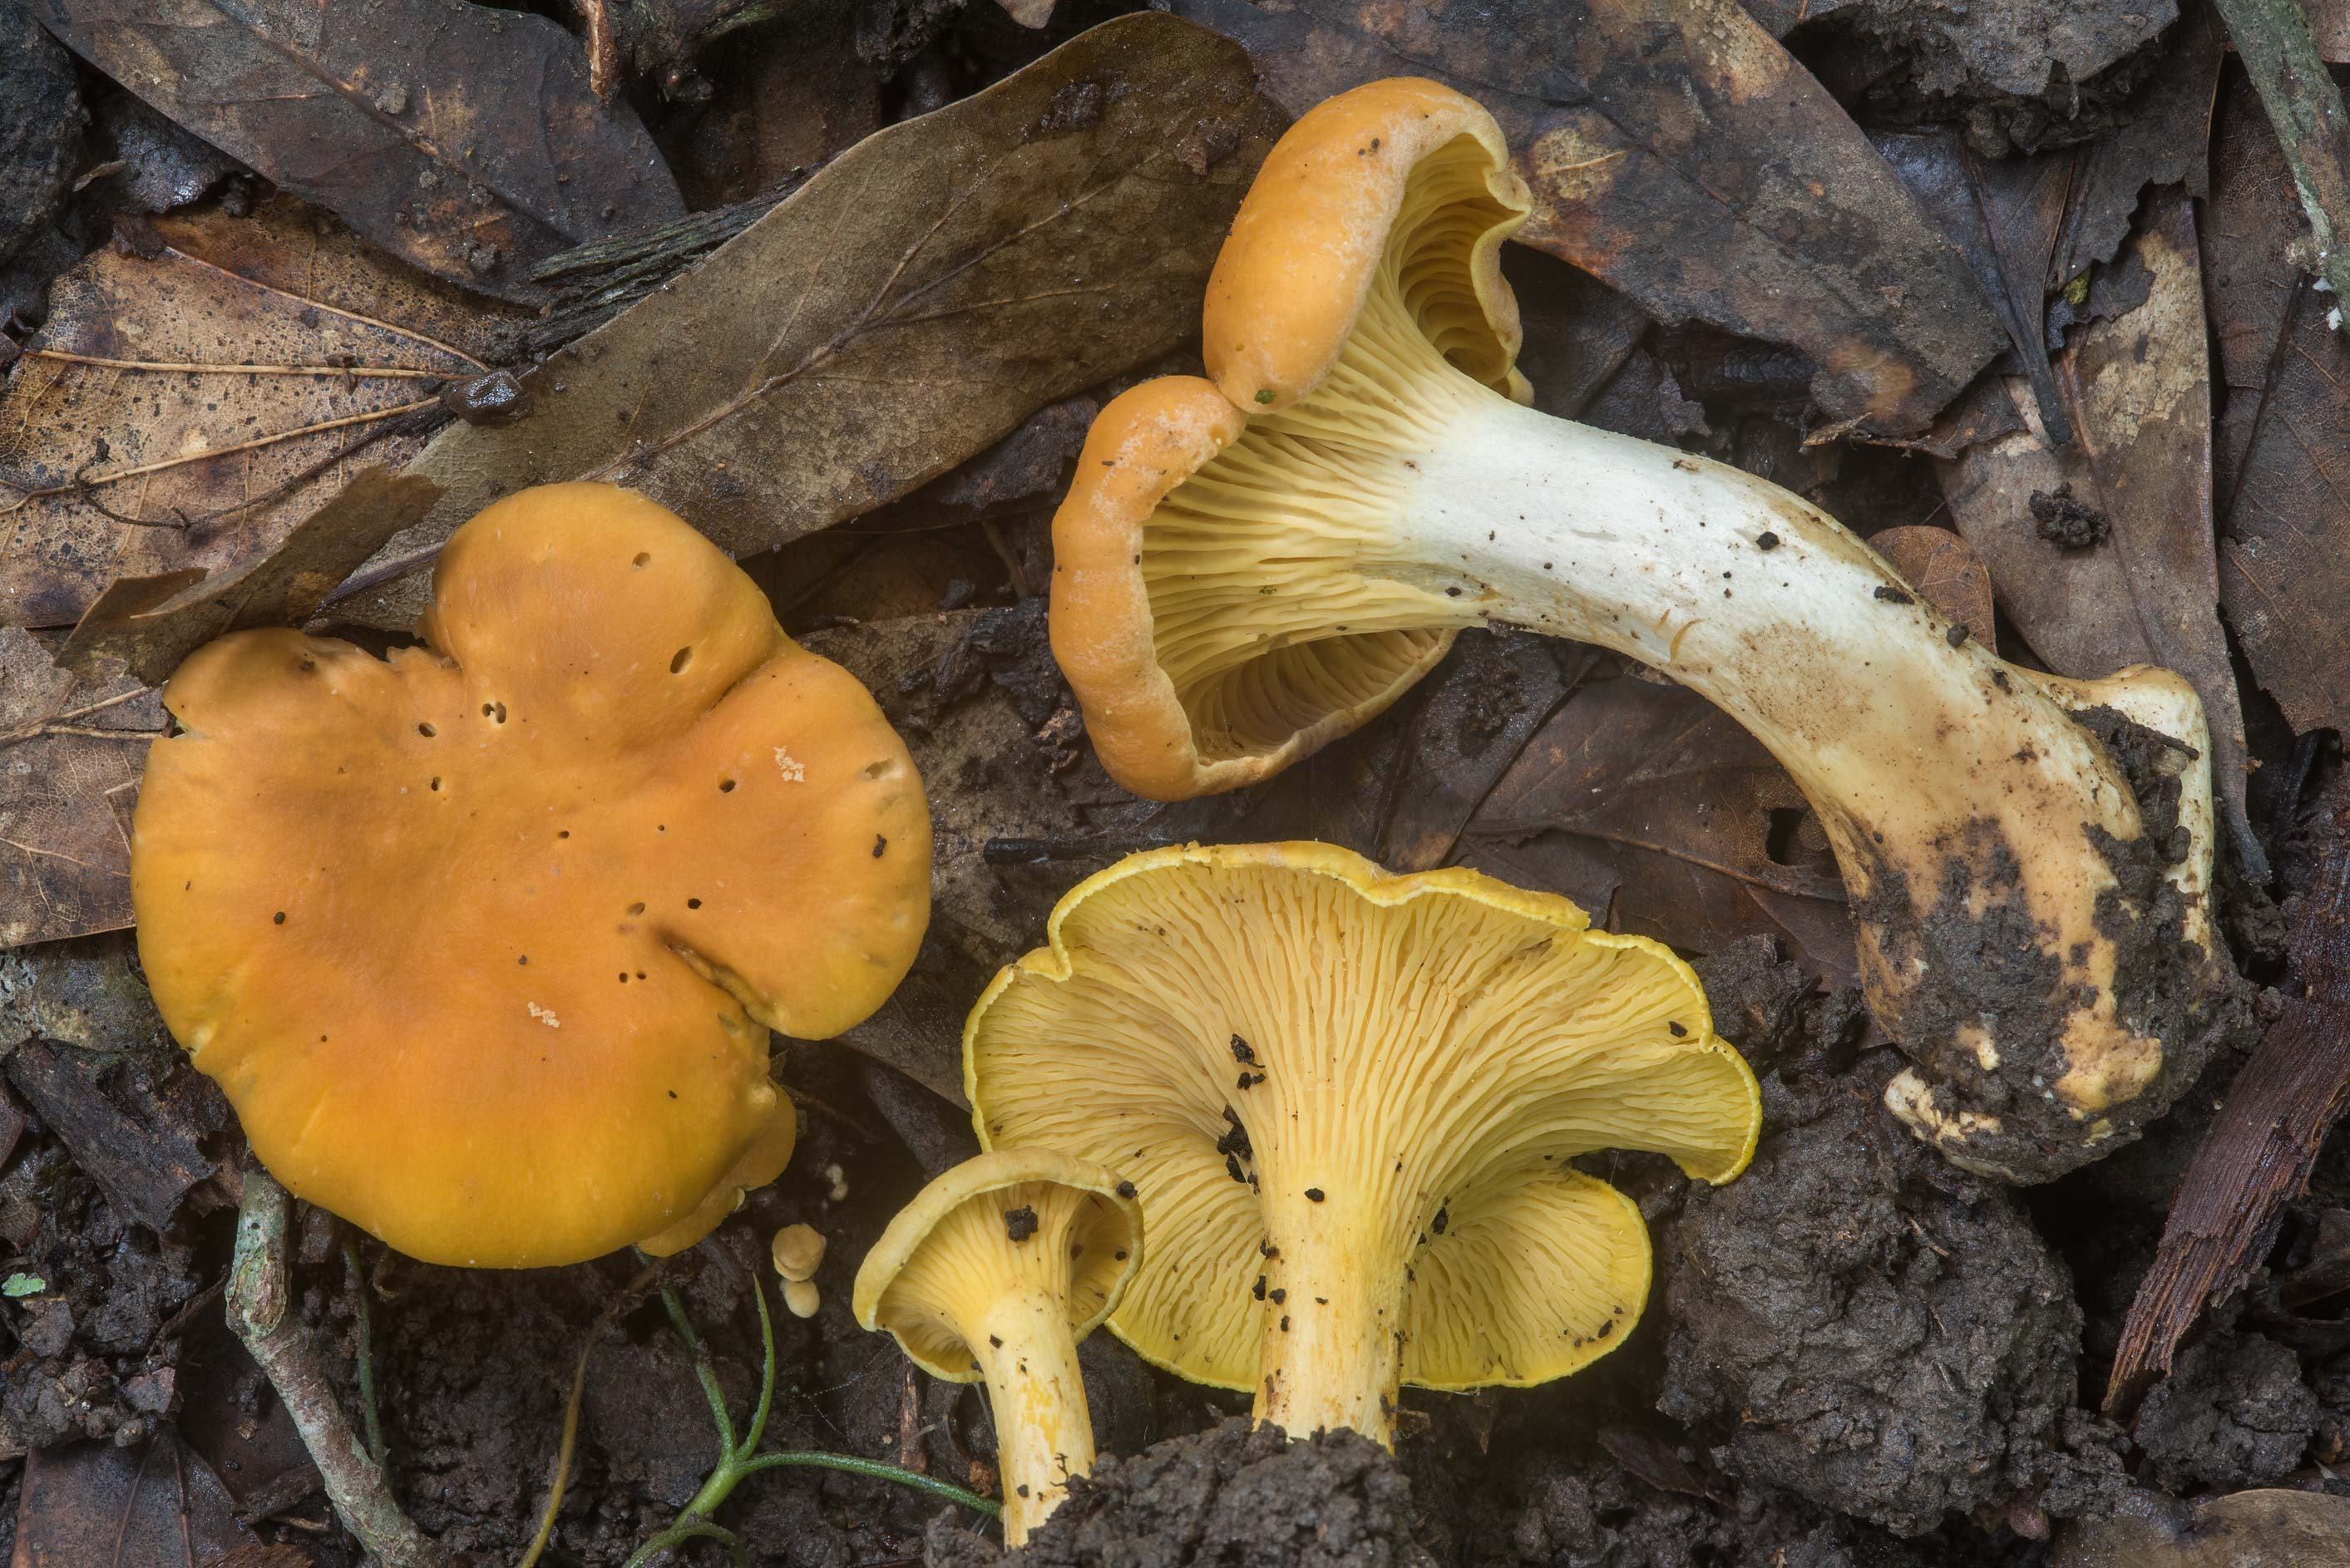 Group of chanterelle mushrooms (Cantharellus...Creek Park. College Station, Texas